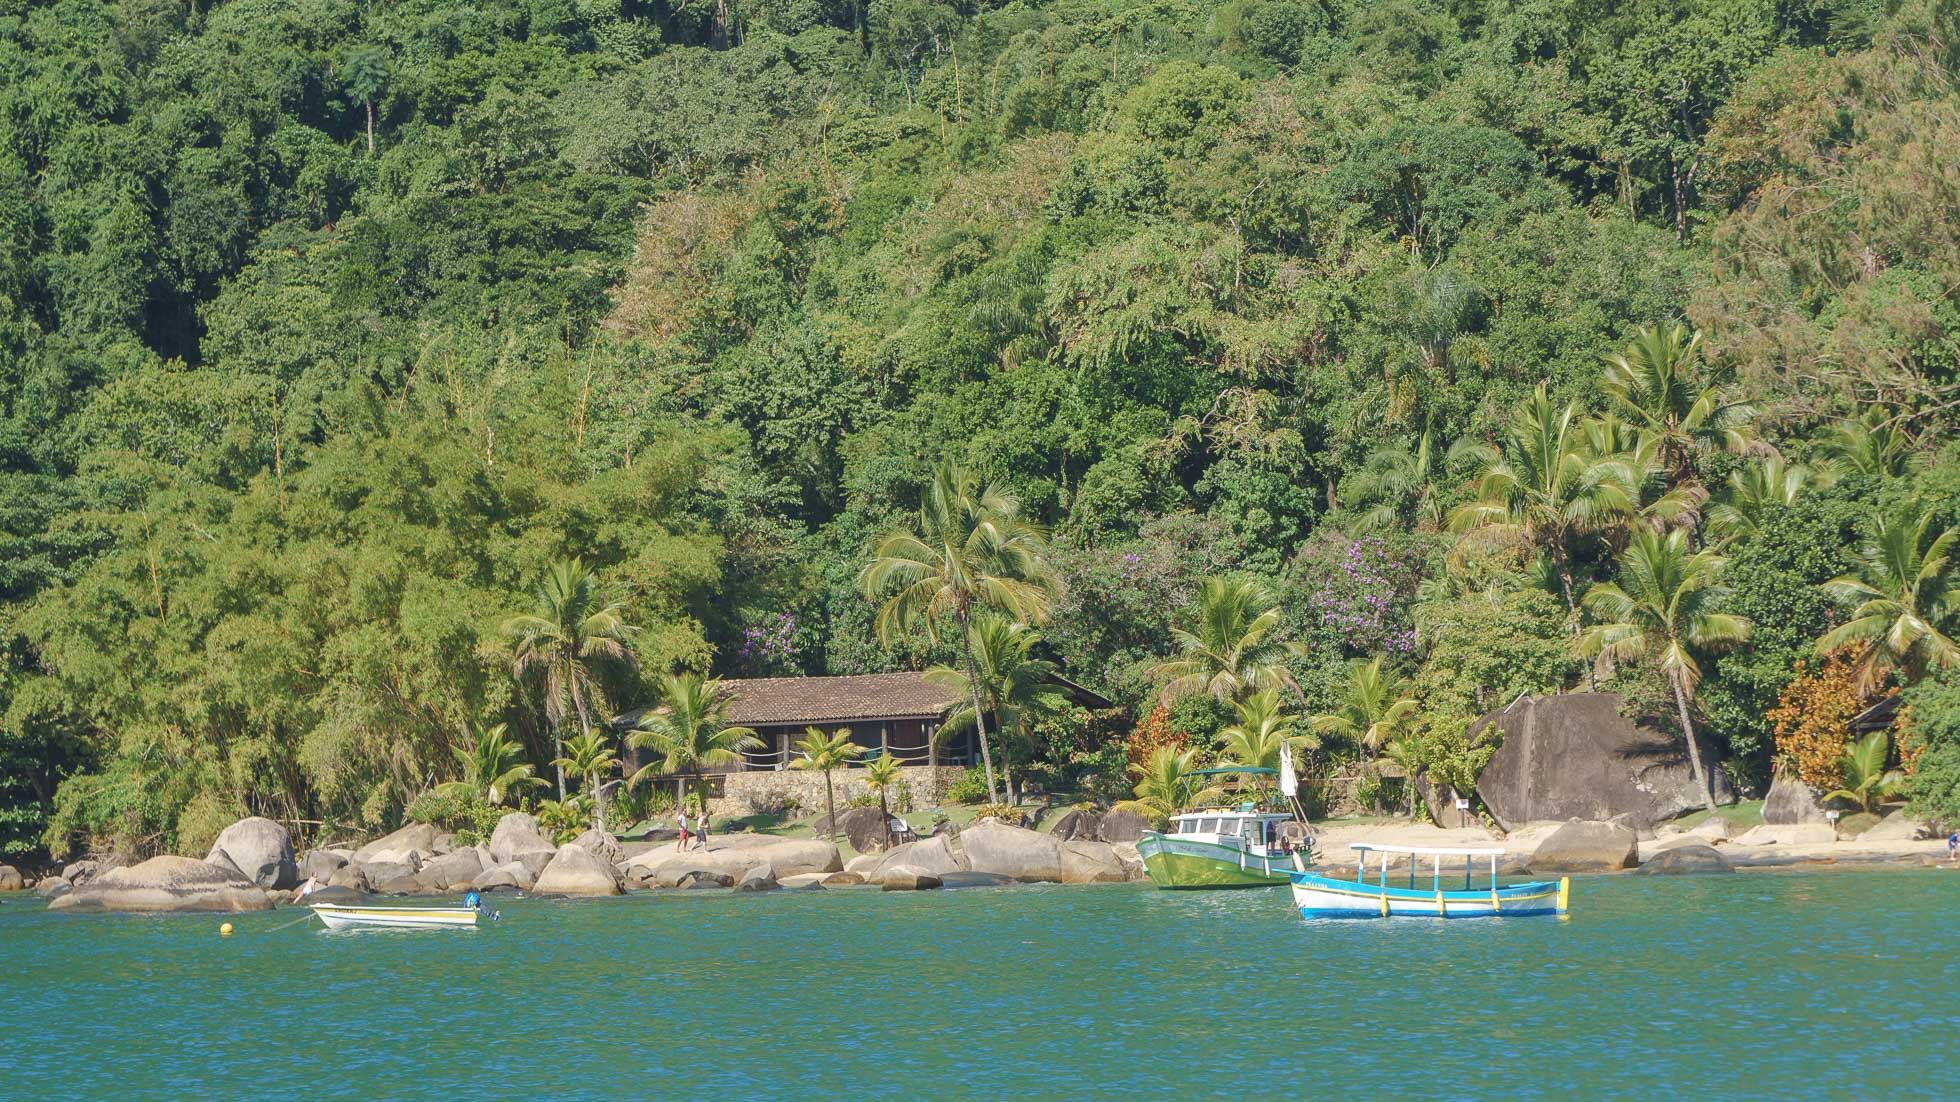 Lesvoyageuses-paraty-bresil-guide-voyage-59